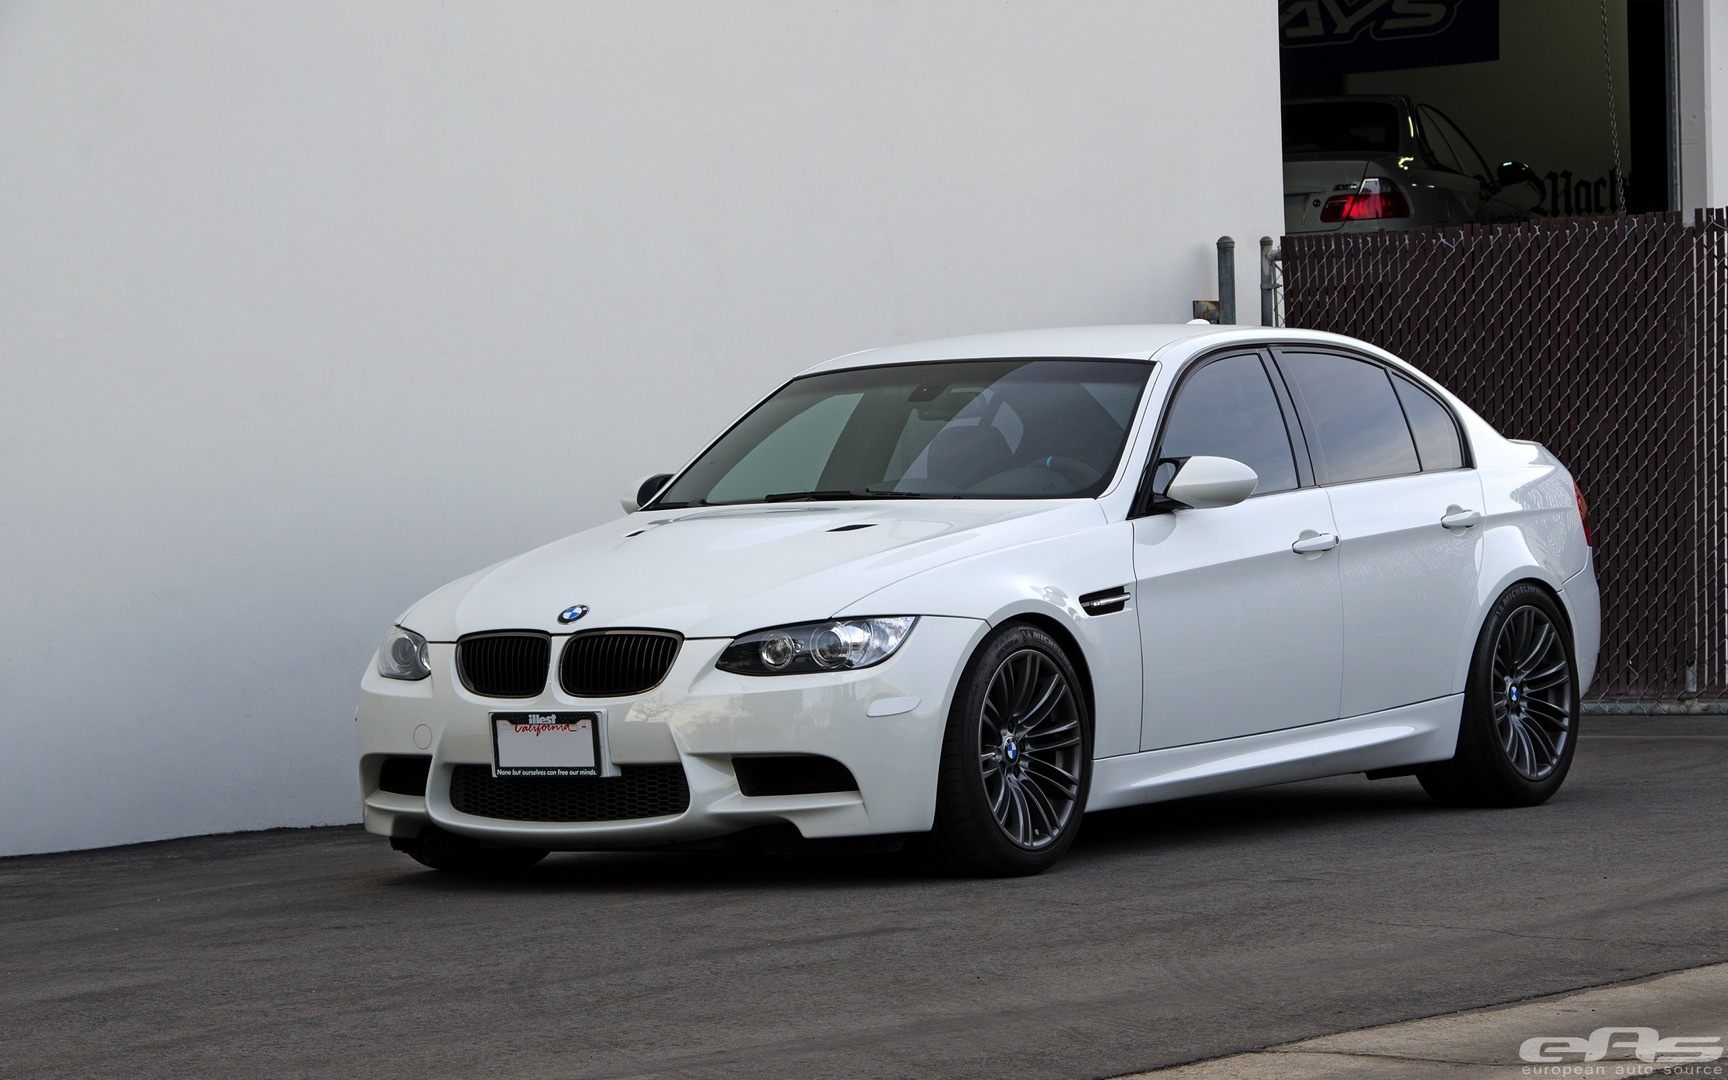 alpine white bmw e90 m3 rides clean autoevolution. Black Bedroom Furniture Sets. Home Design Ideas